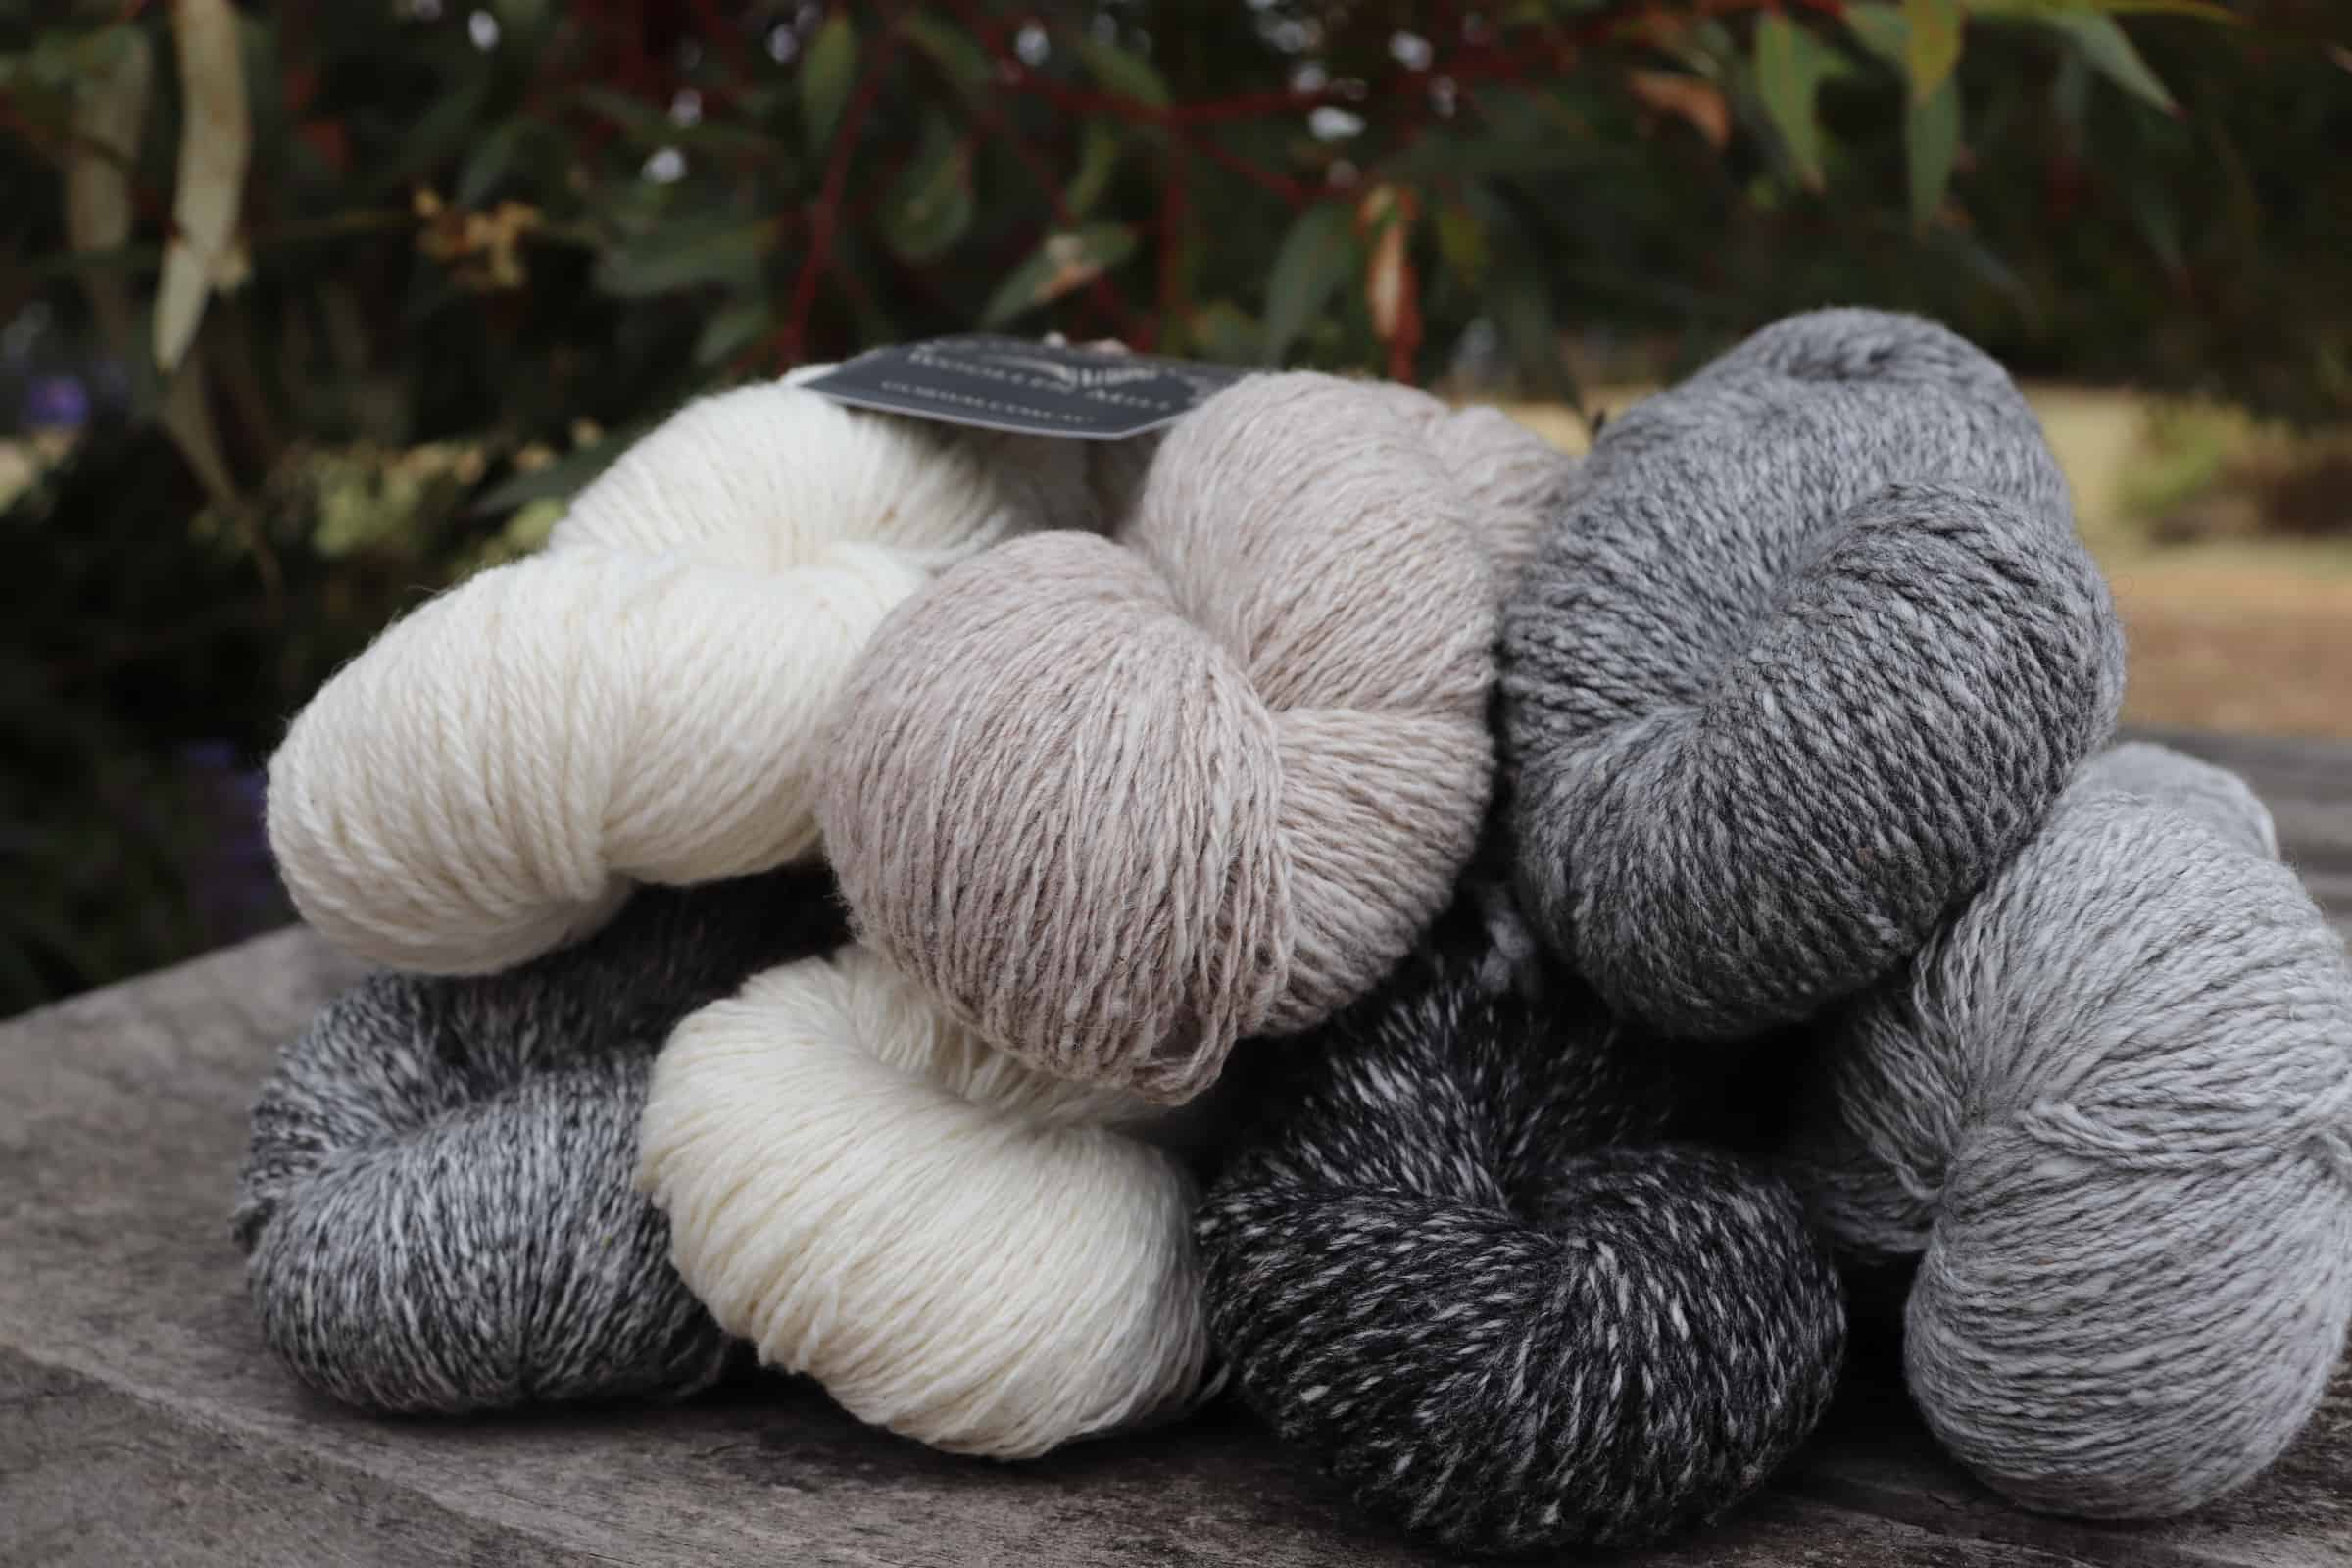 Skeins of white, tan and gray yarn.